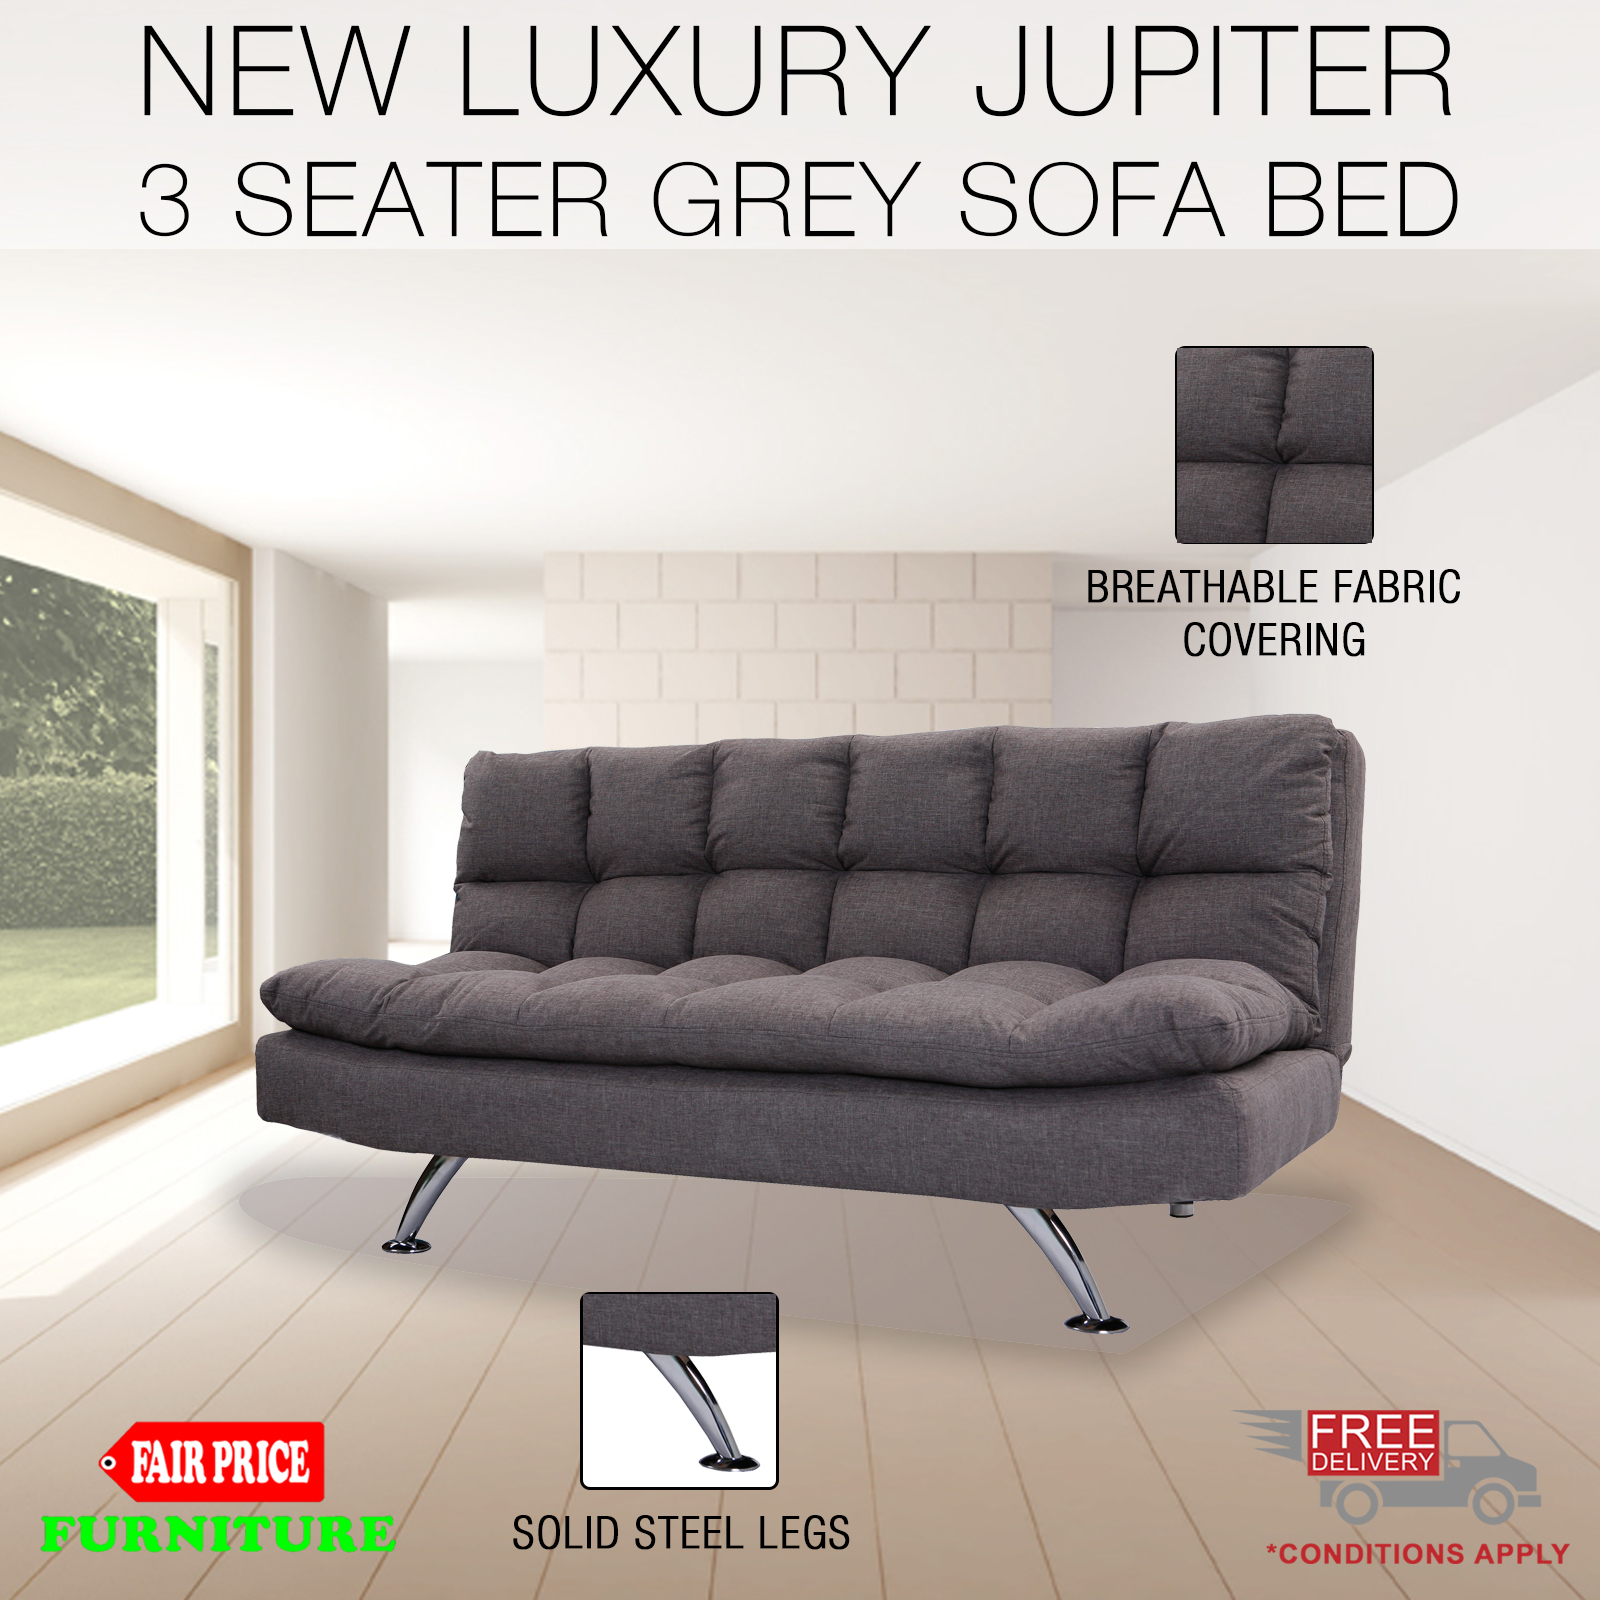 New Luxury Jupiter 3 Seater Grey Linen Fabric Solid Steel Legs